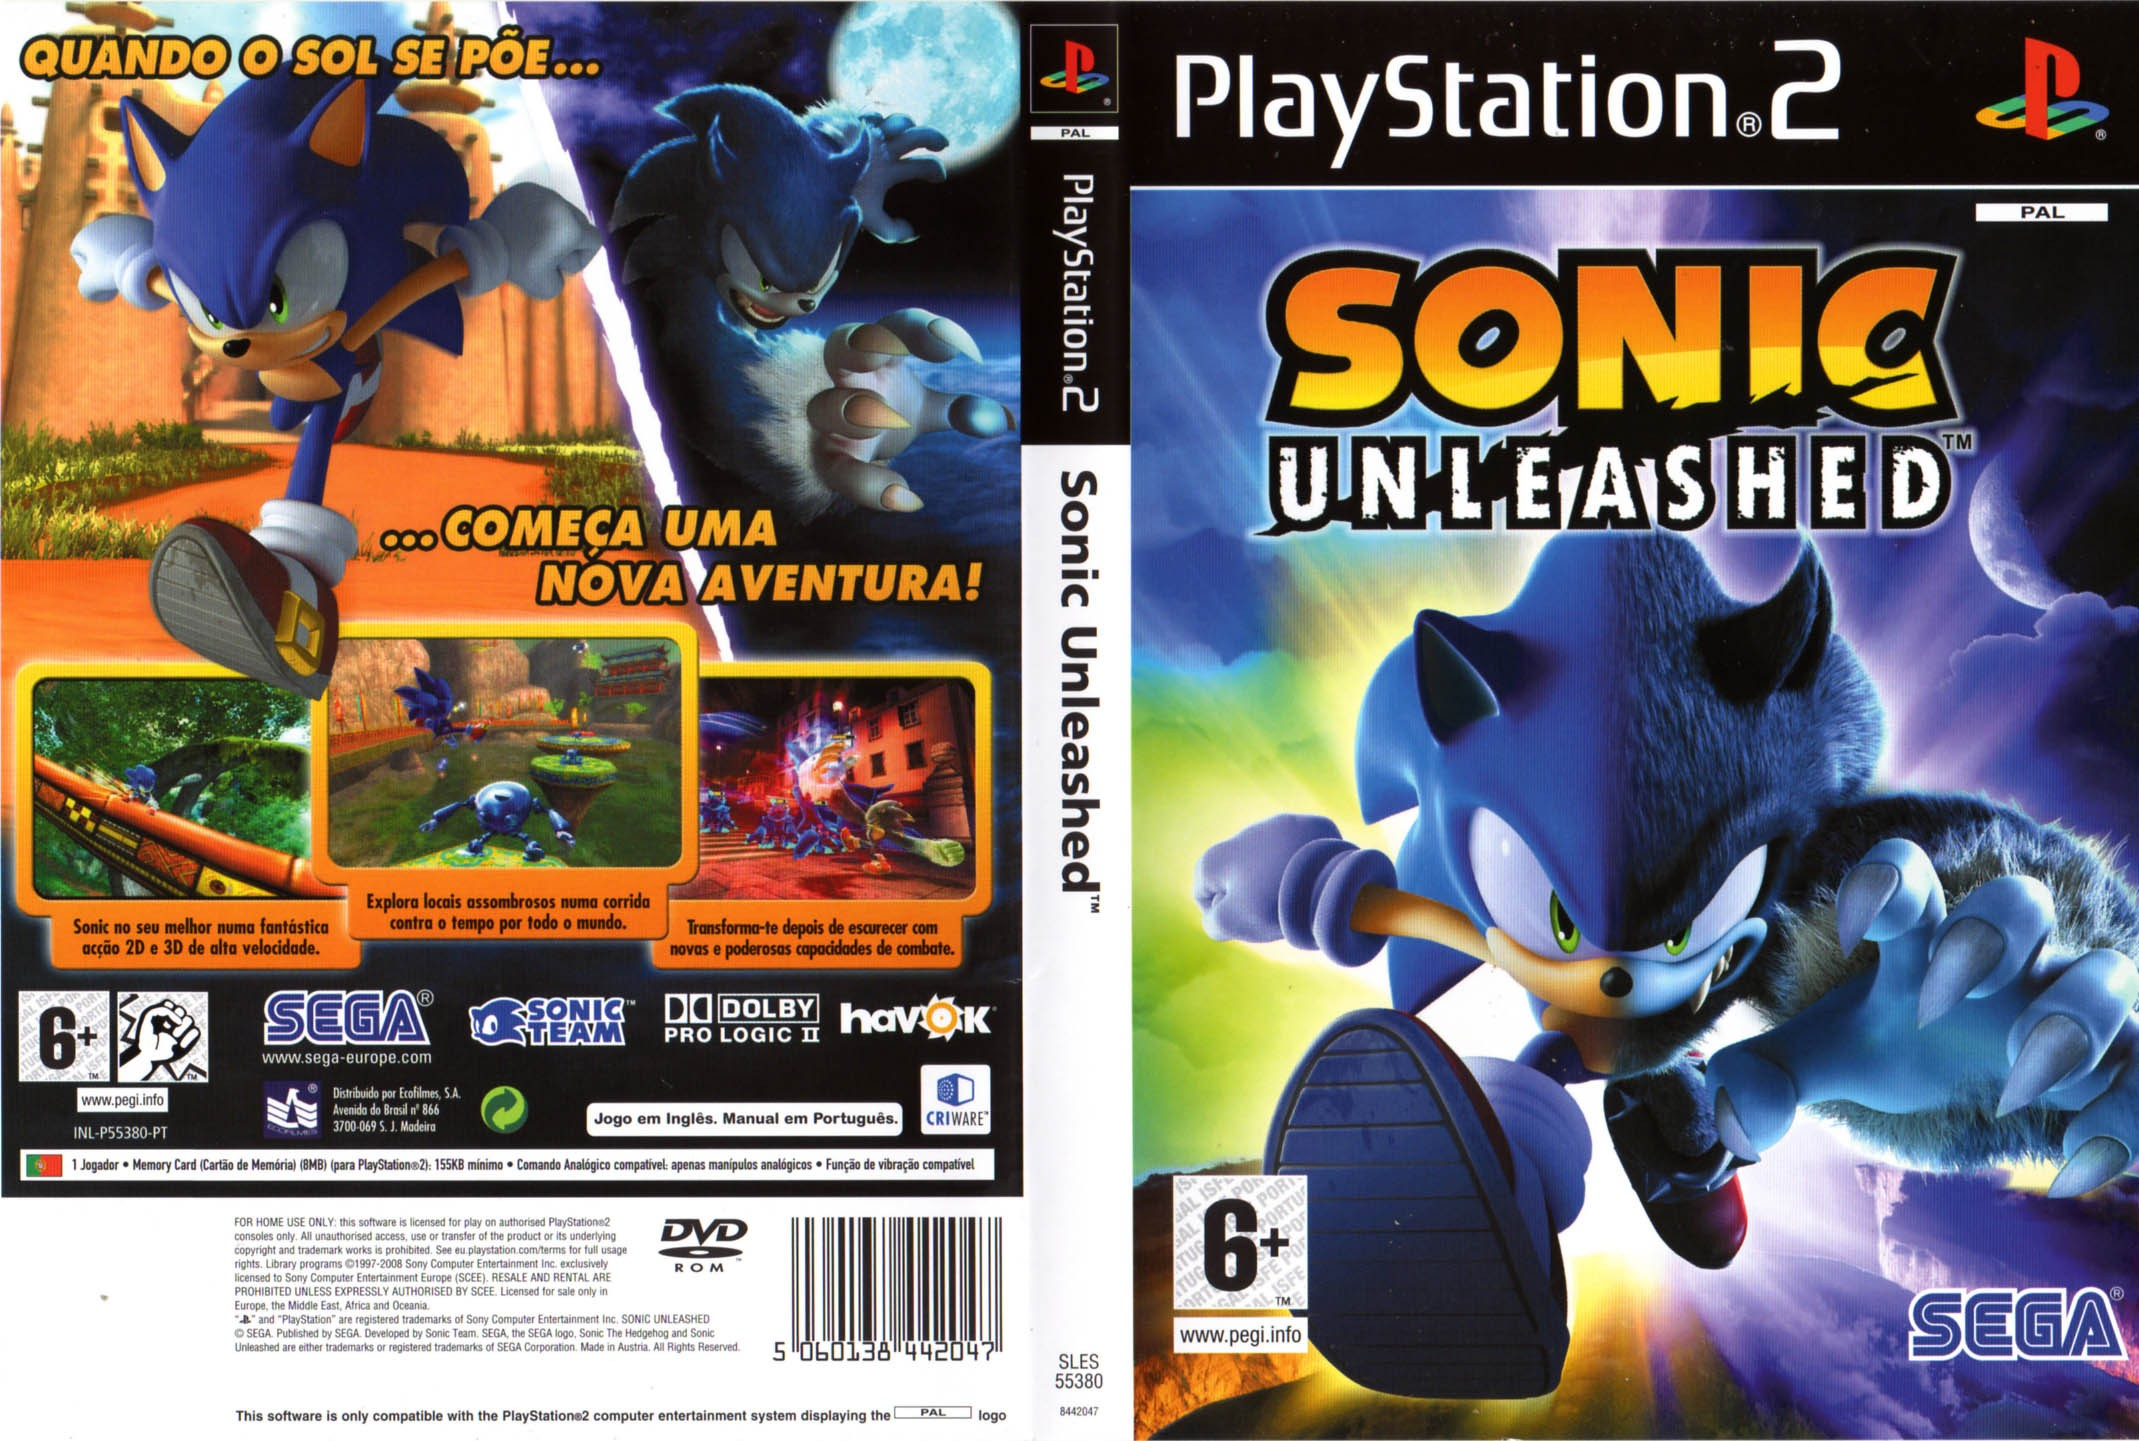 SonicUnleashed